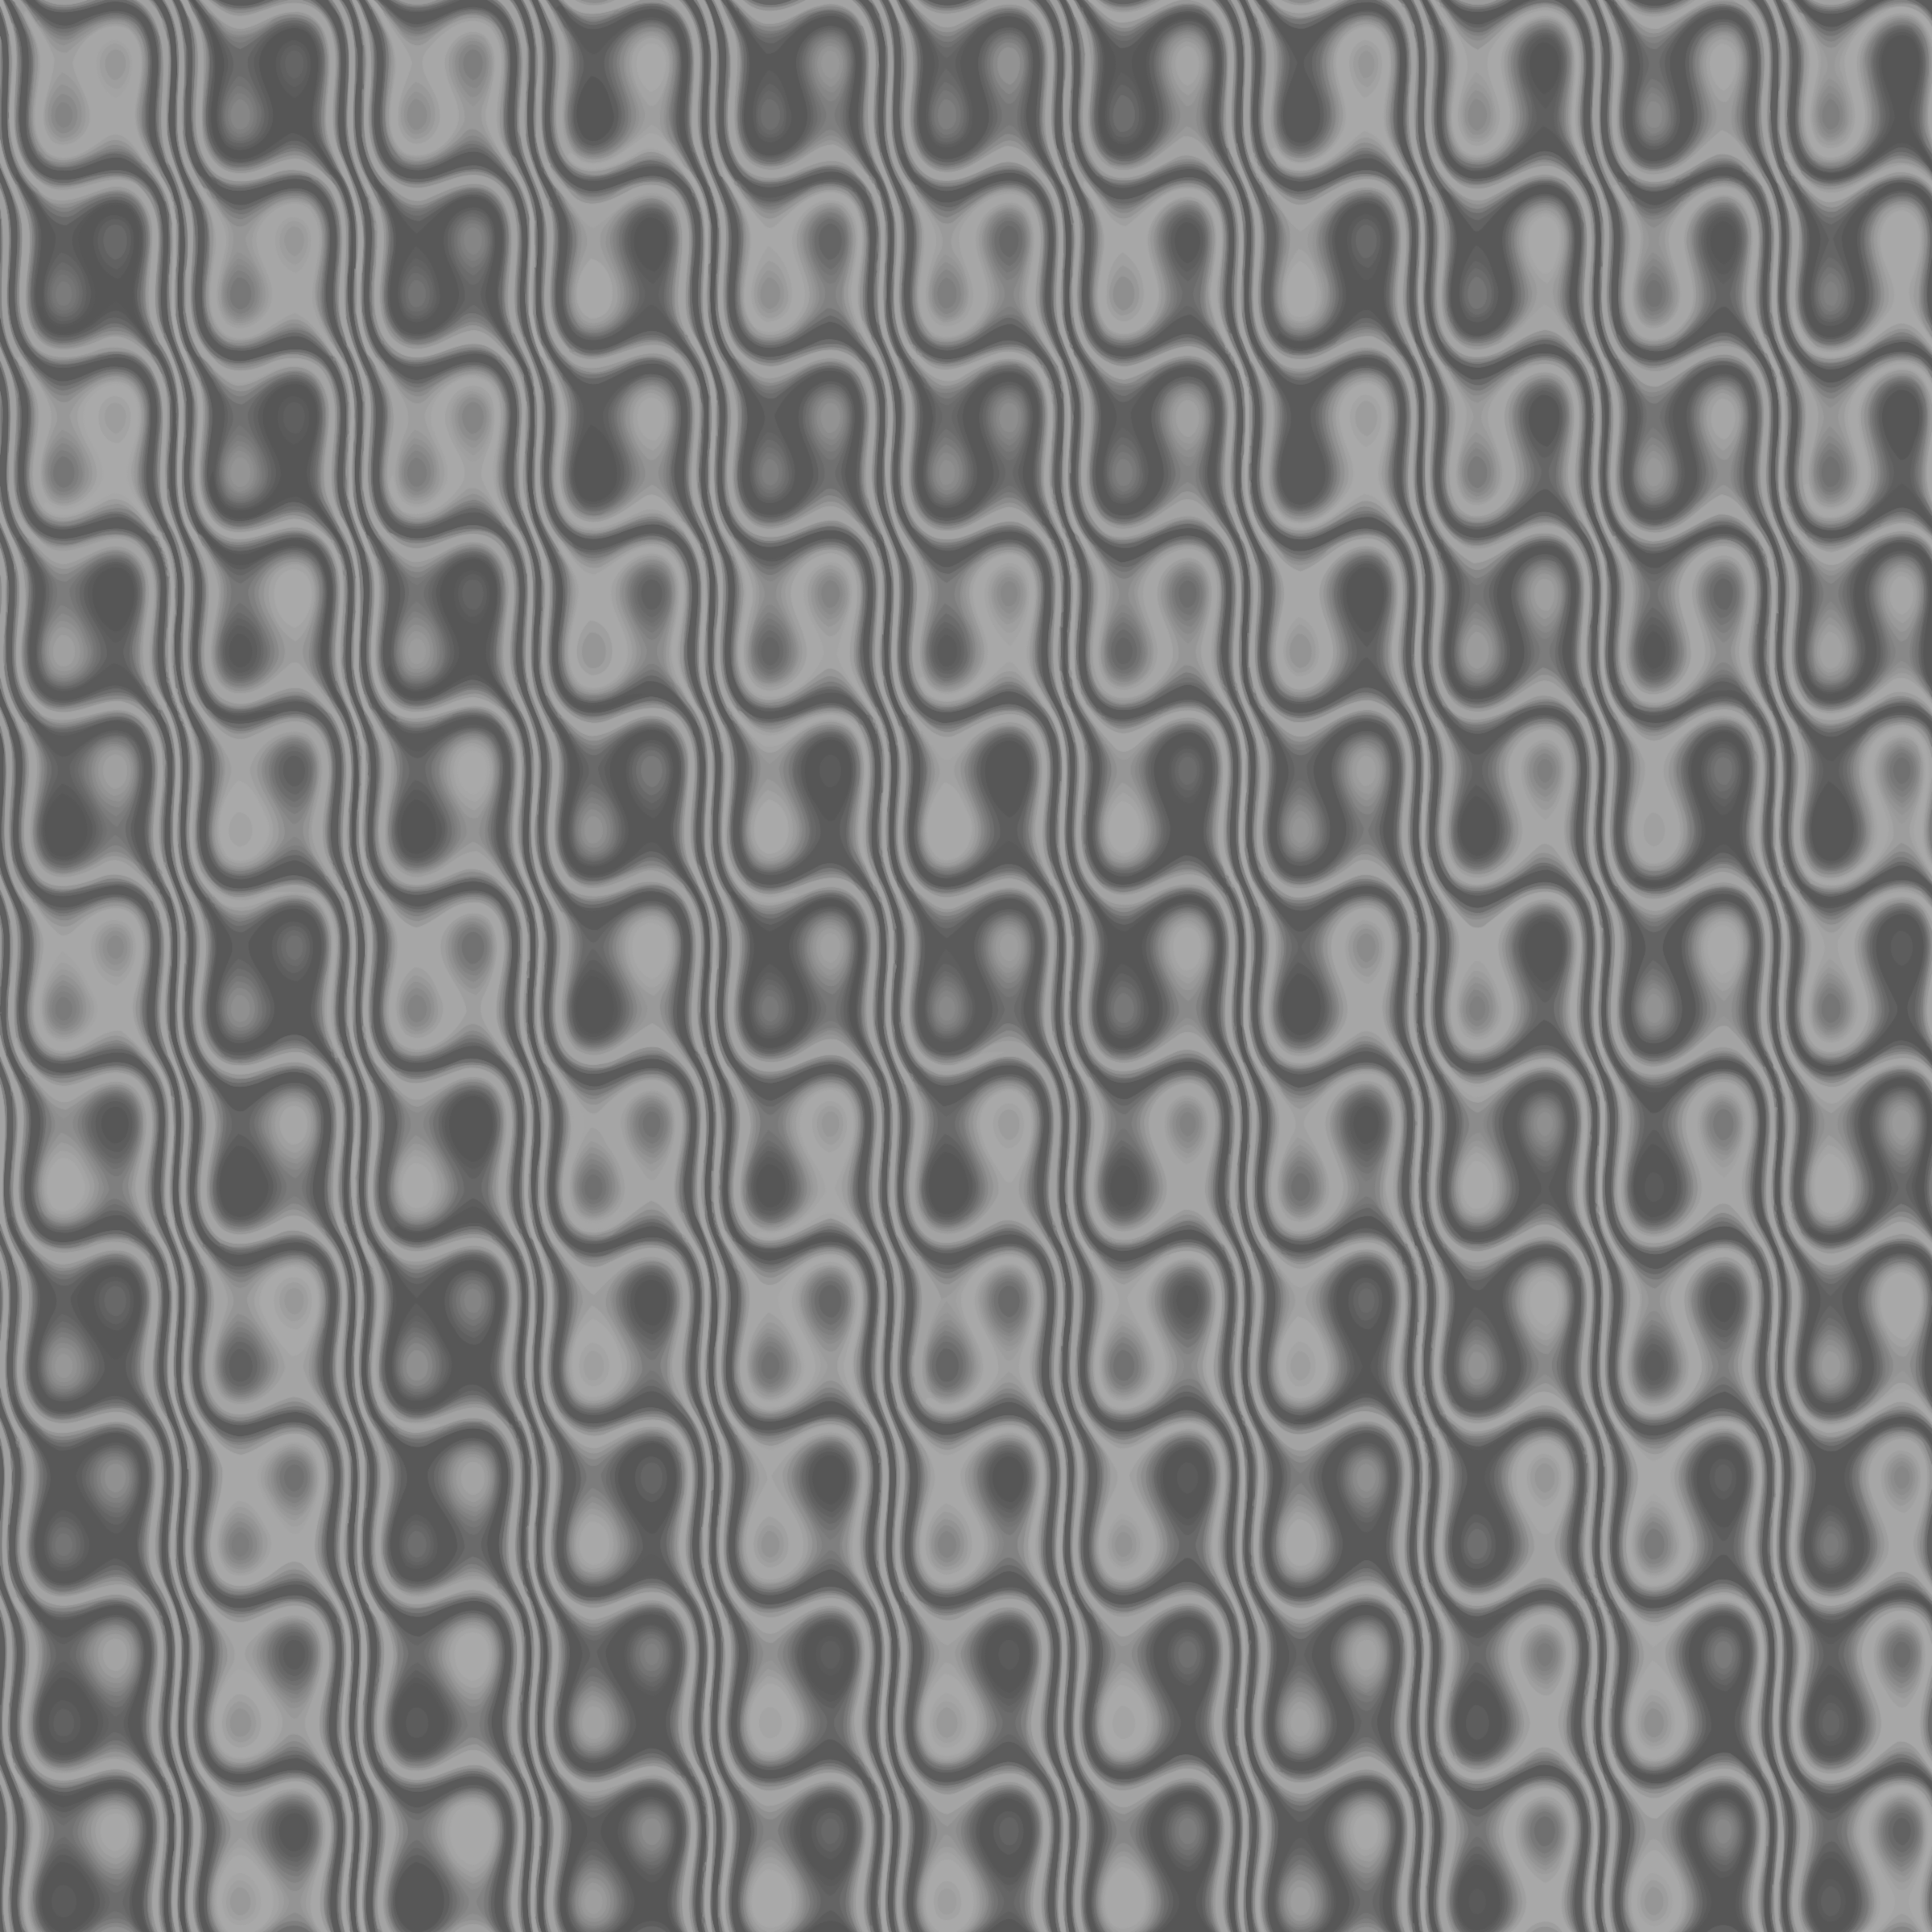 Greyscale clipart #1, Download drawings